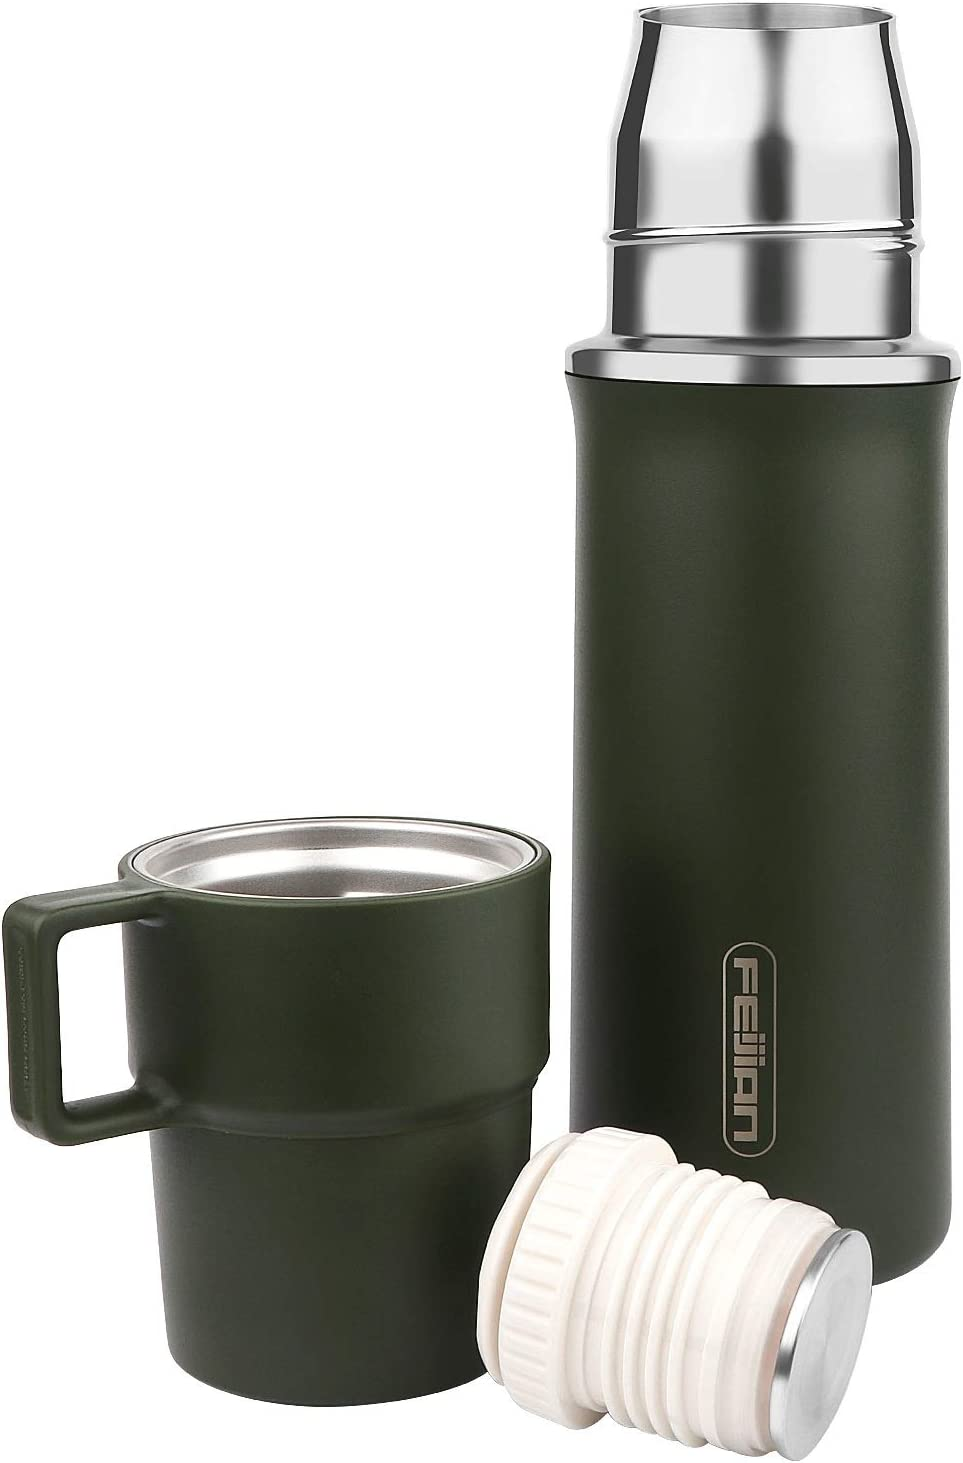 FEIJIAN Thermos Add-A-Cup Water Bottle Insulated Vacuum Stainless Steel Beverage Bottle for Hot & Cold Drink, Coffee Travel Mug Thermal -Leakproof Build-in Lid Cup Integrated Handle, 21 OZ, Army Green